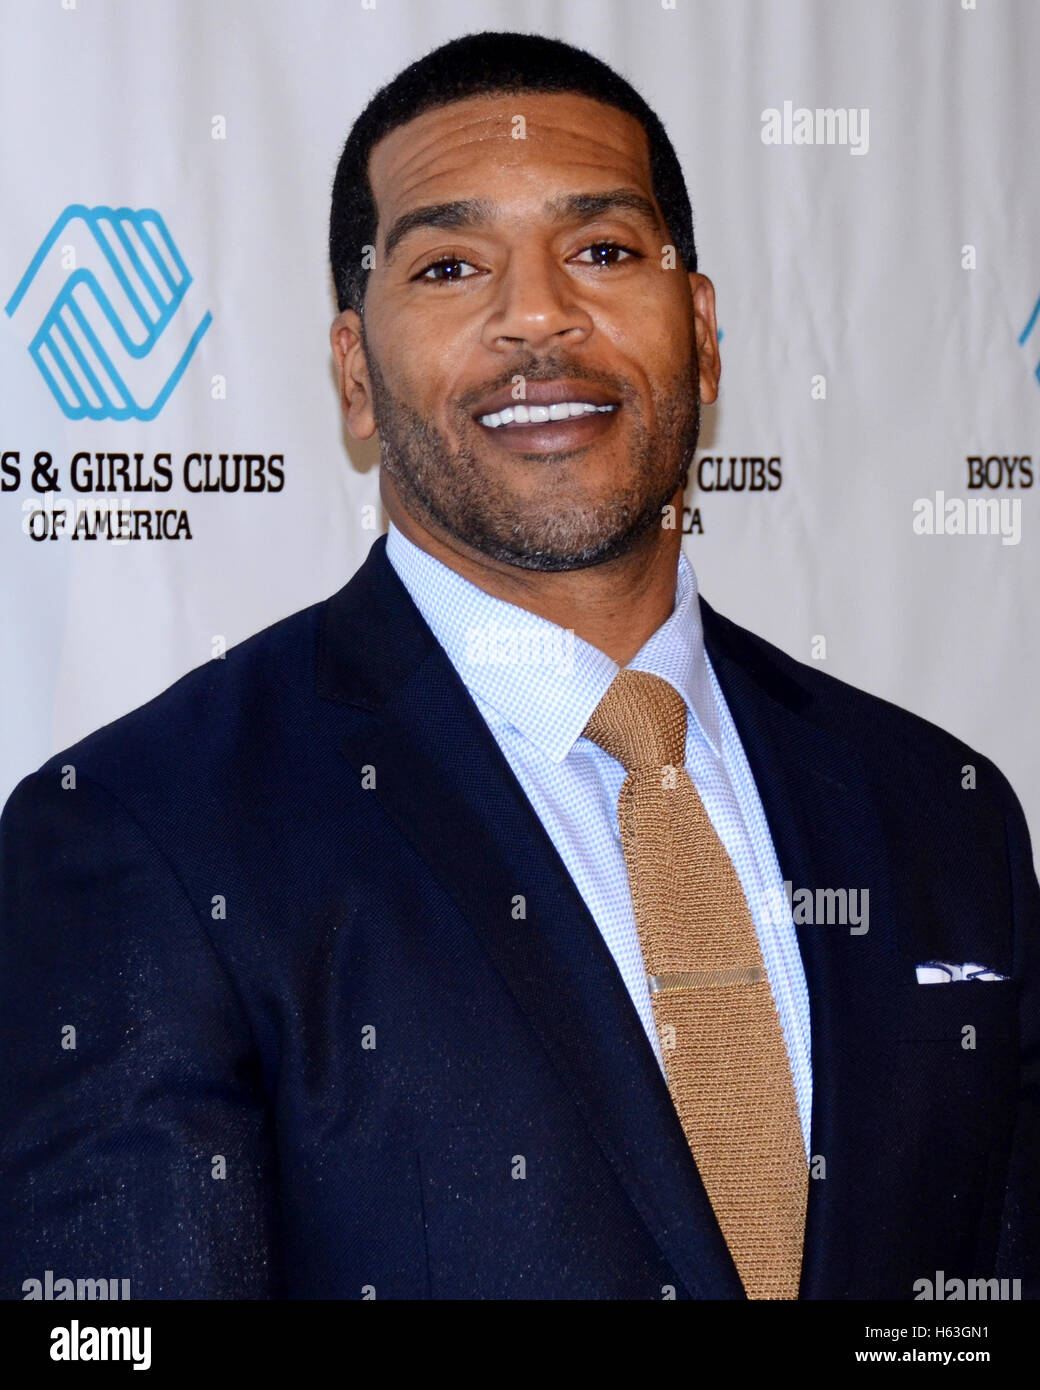 Sports Anchor Jim Jackson arrives at the 2015 Boys and Girls Club